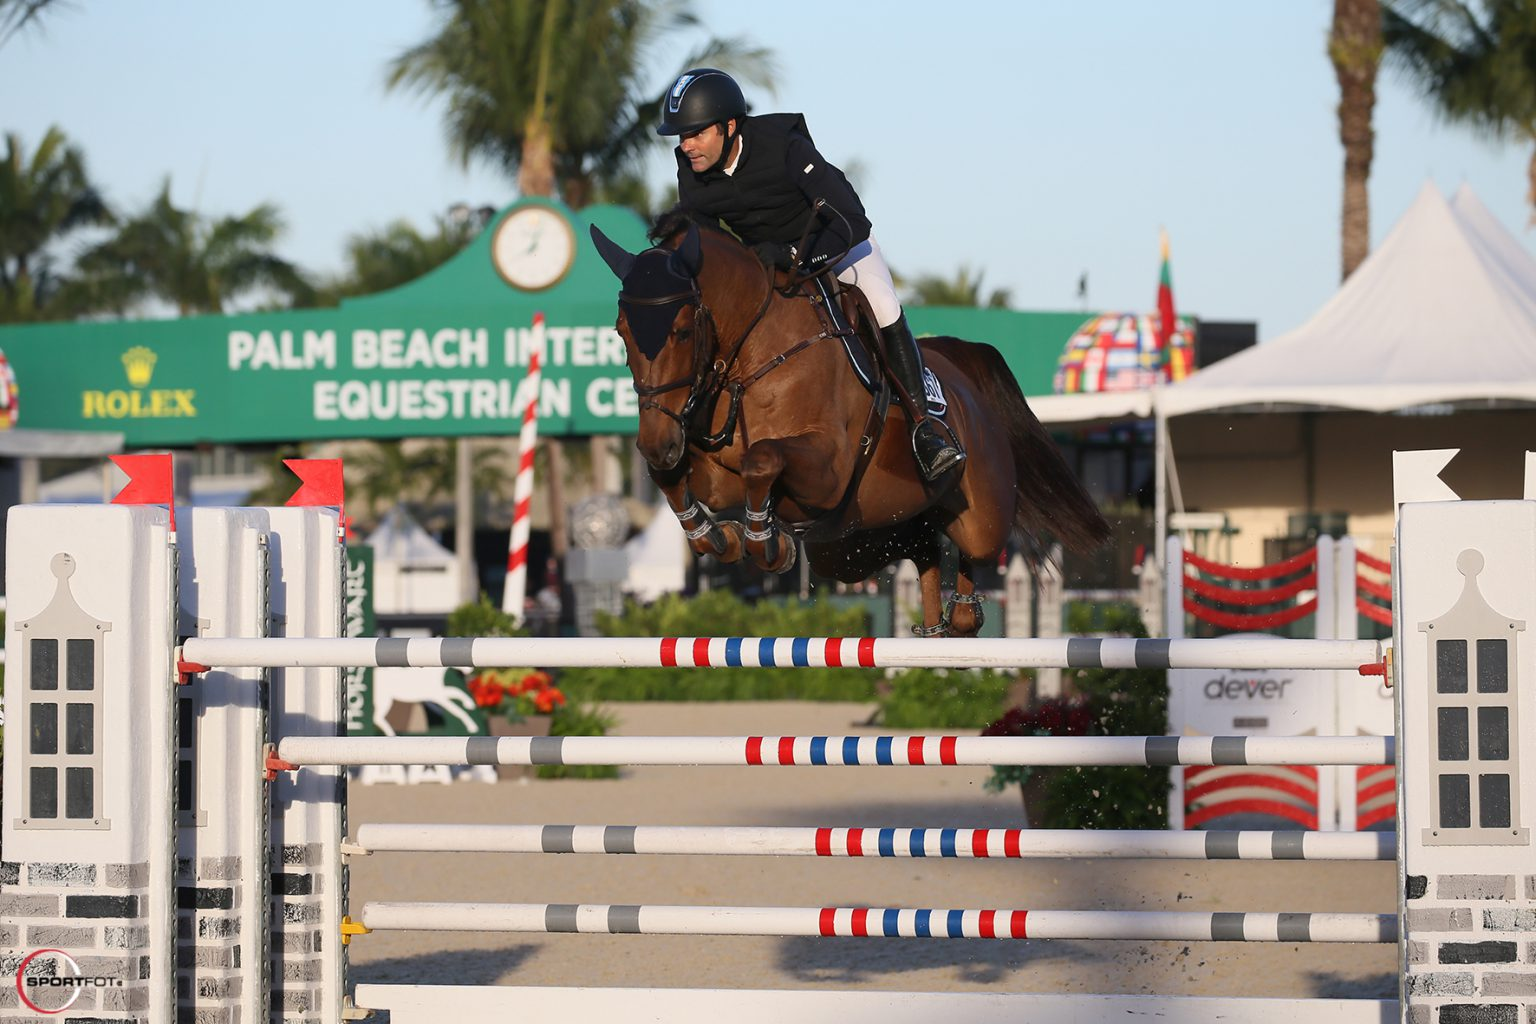 Quintana takes main victory during opening day WEF